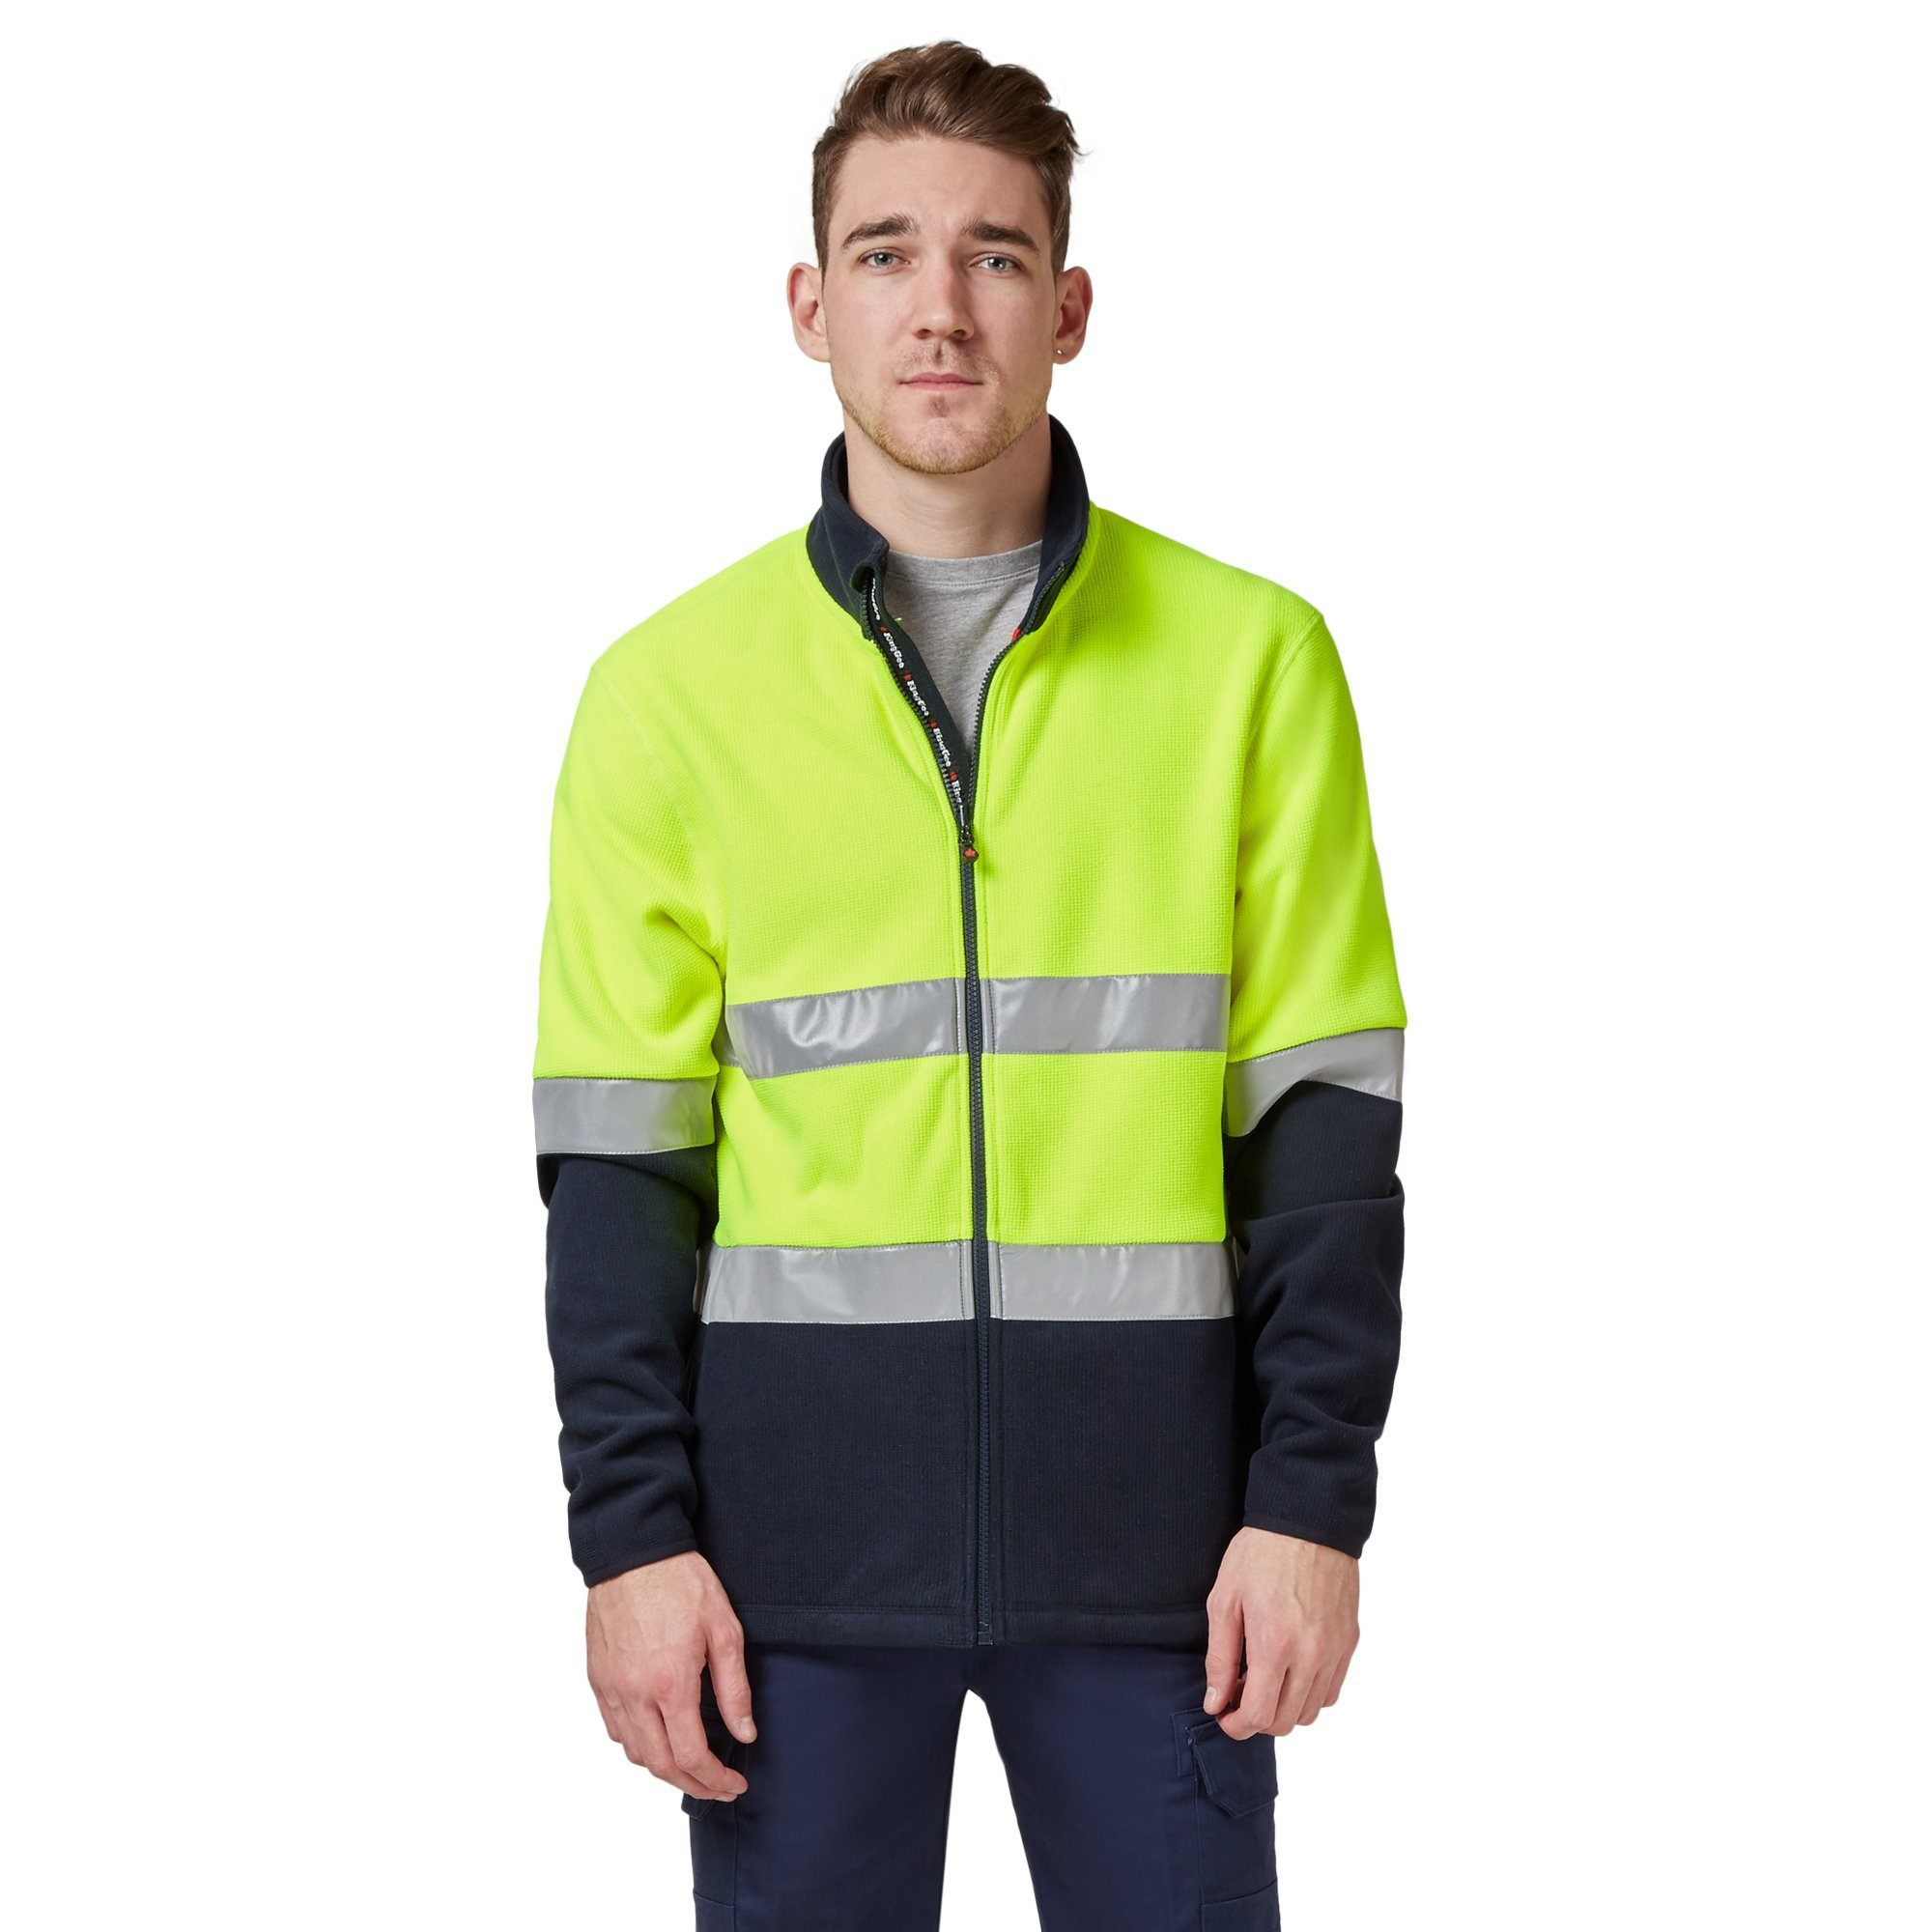 King Gee Reflective Full Zip Spliced Hi Vis Fleece - Yellow/Navy Workwear Isbister & Co Wholesale